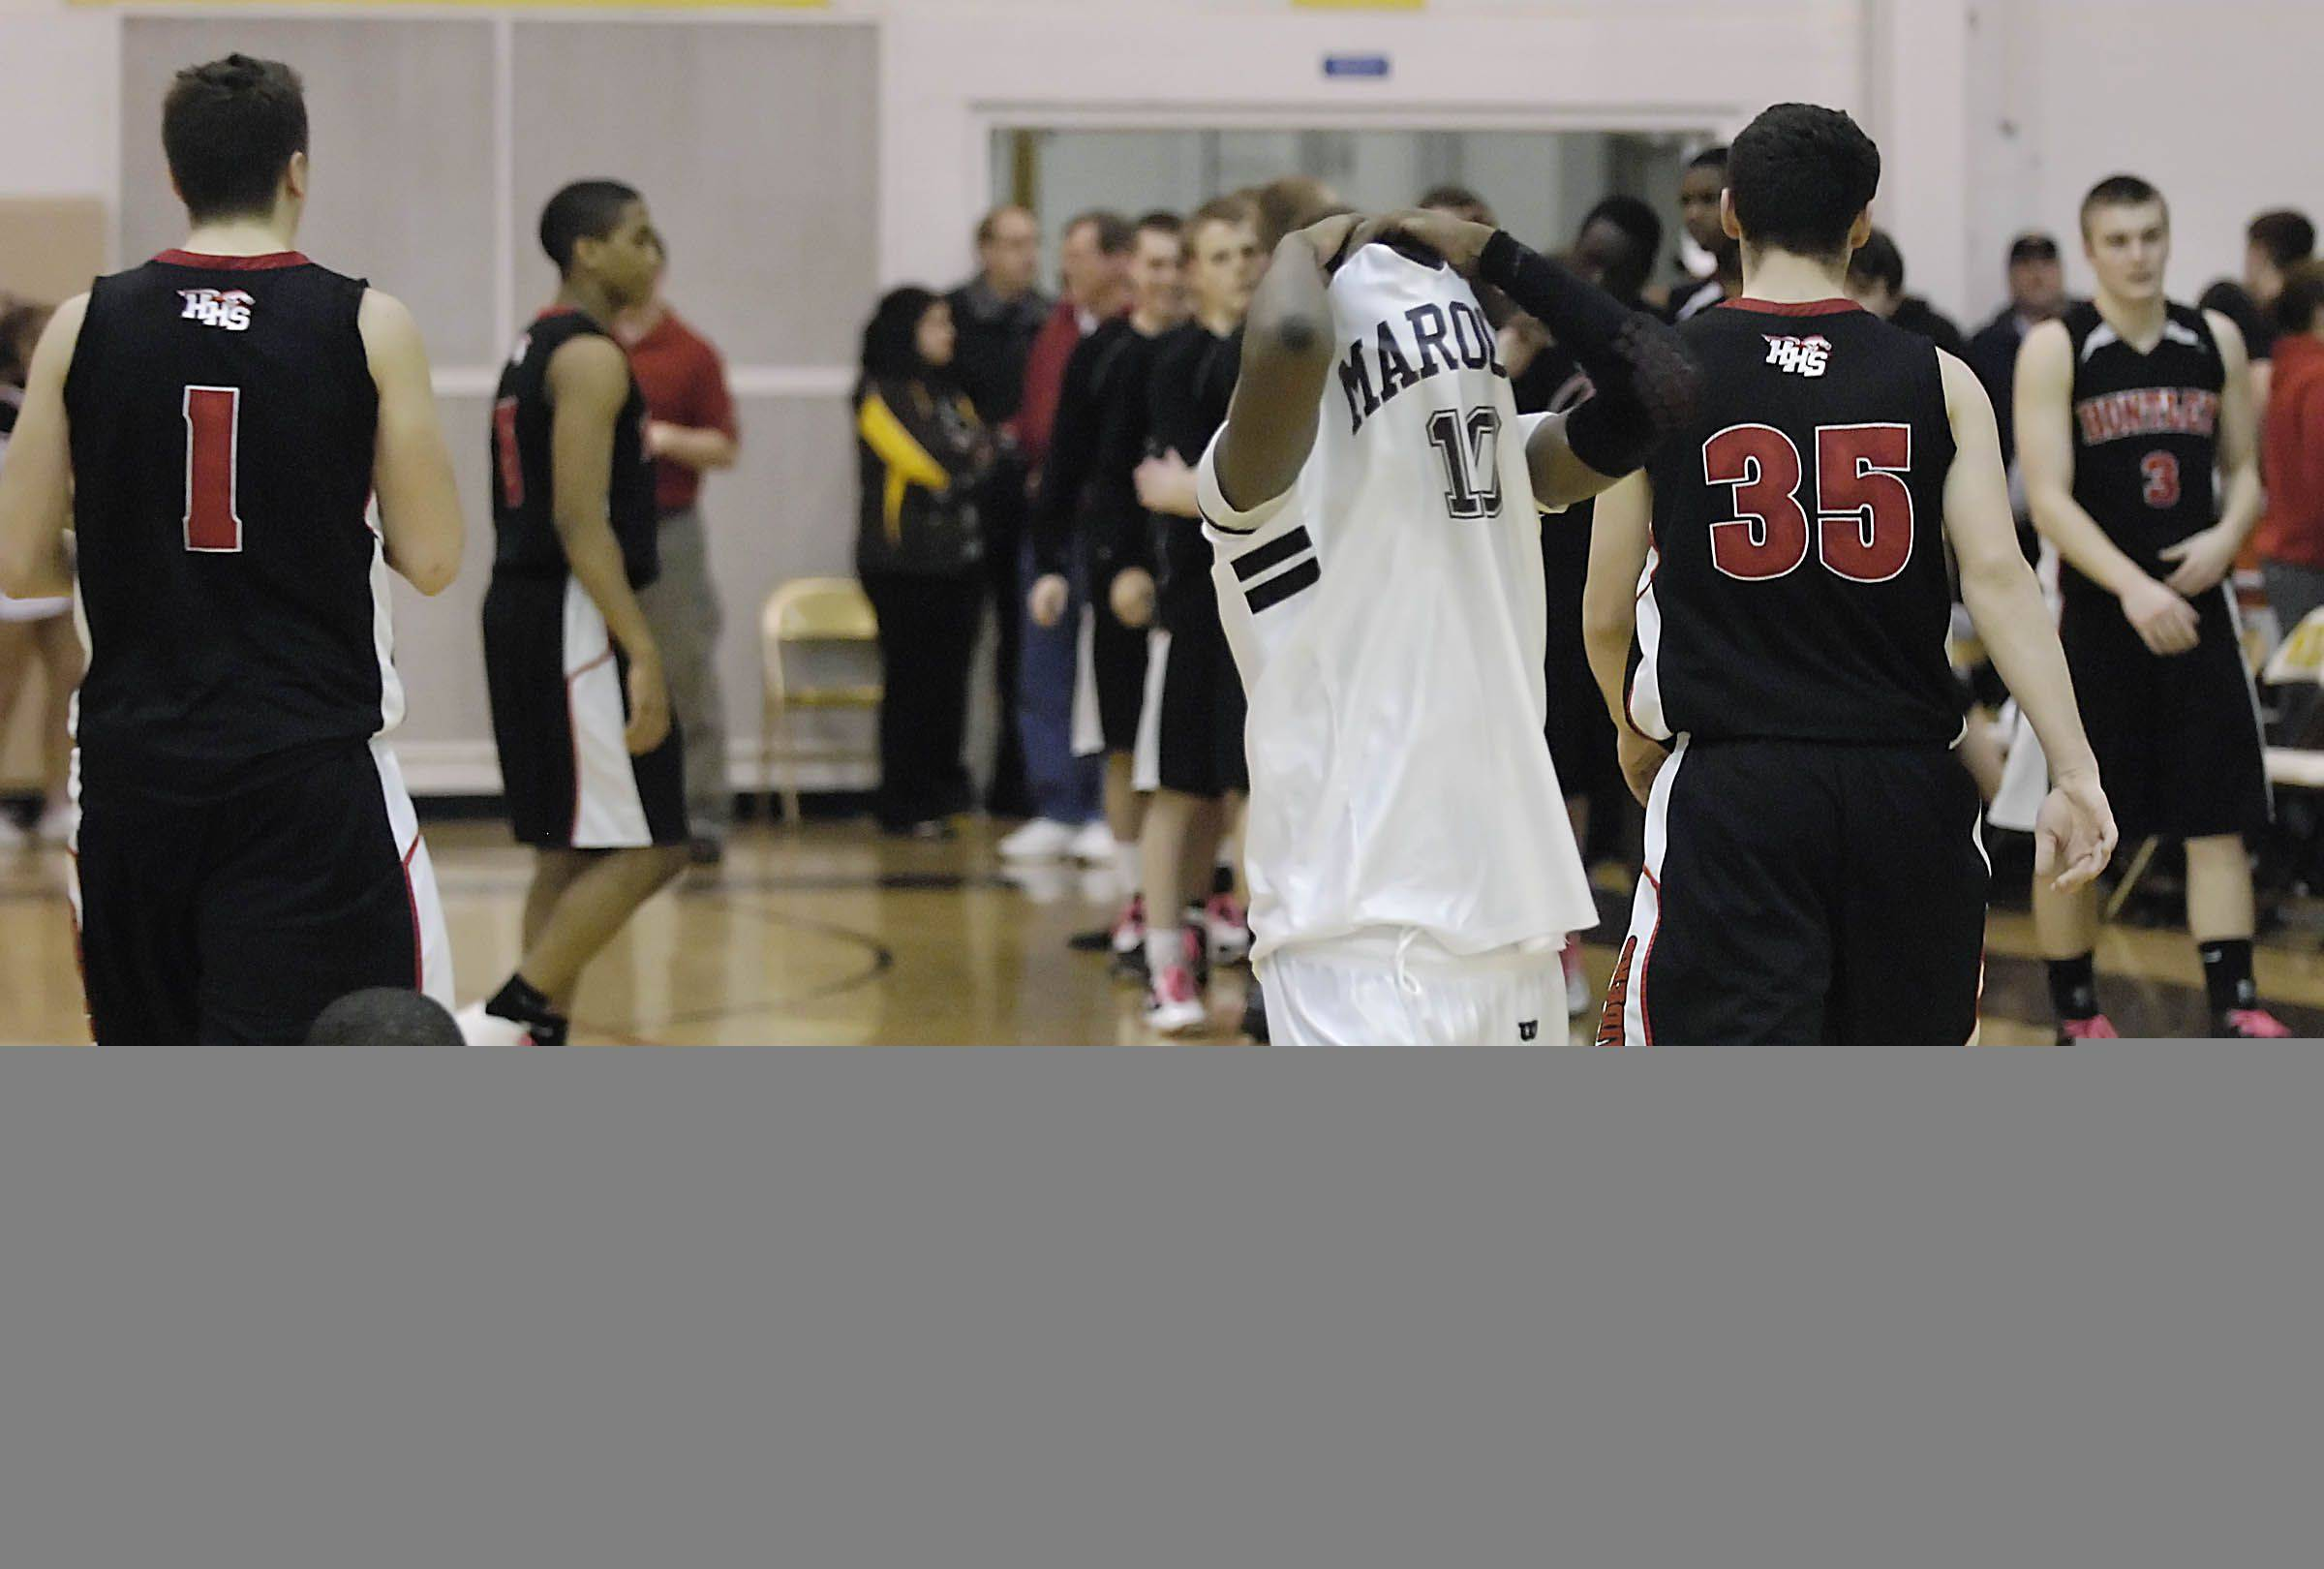 Images: Elgin vs. Huntley boys sectional semifinal basketball